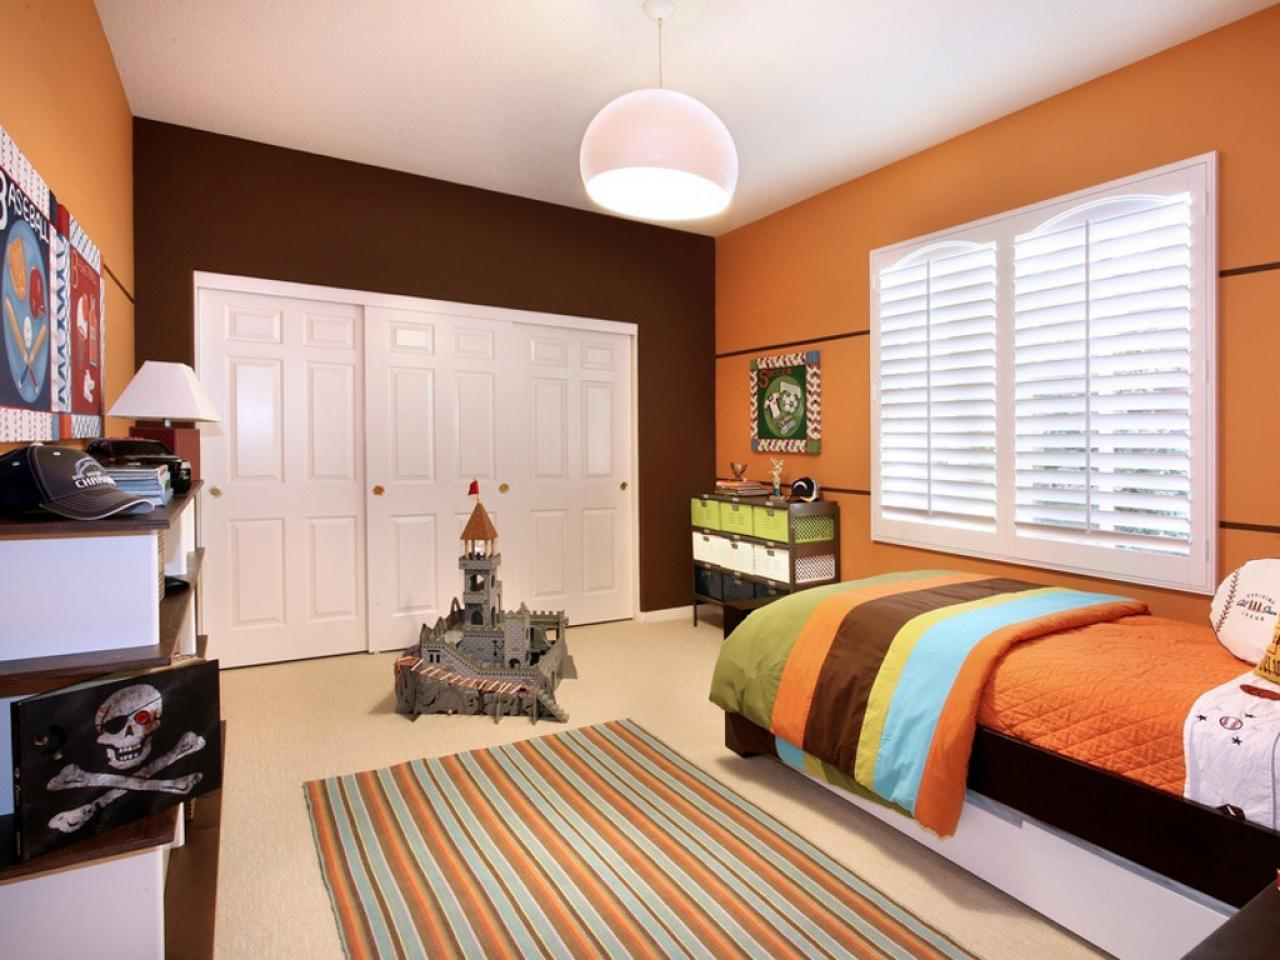 Interior Bedroom Paint Ideas bedroom paint color ideas pictures options hgtv bright yellow bedroom